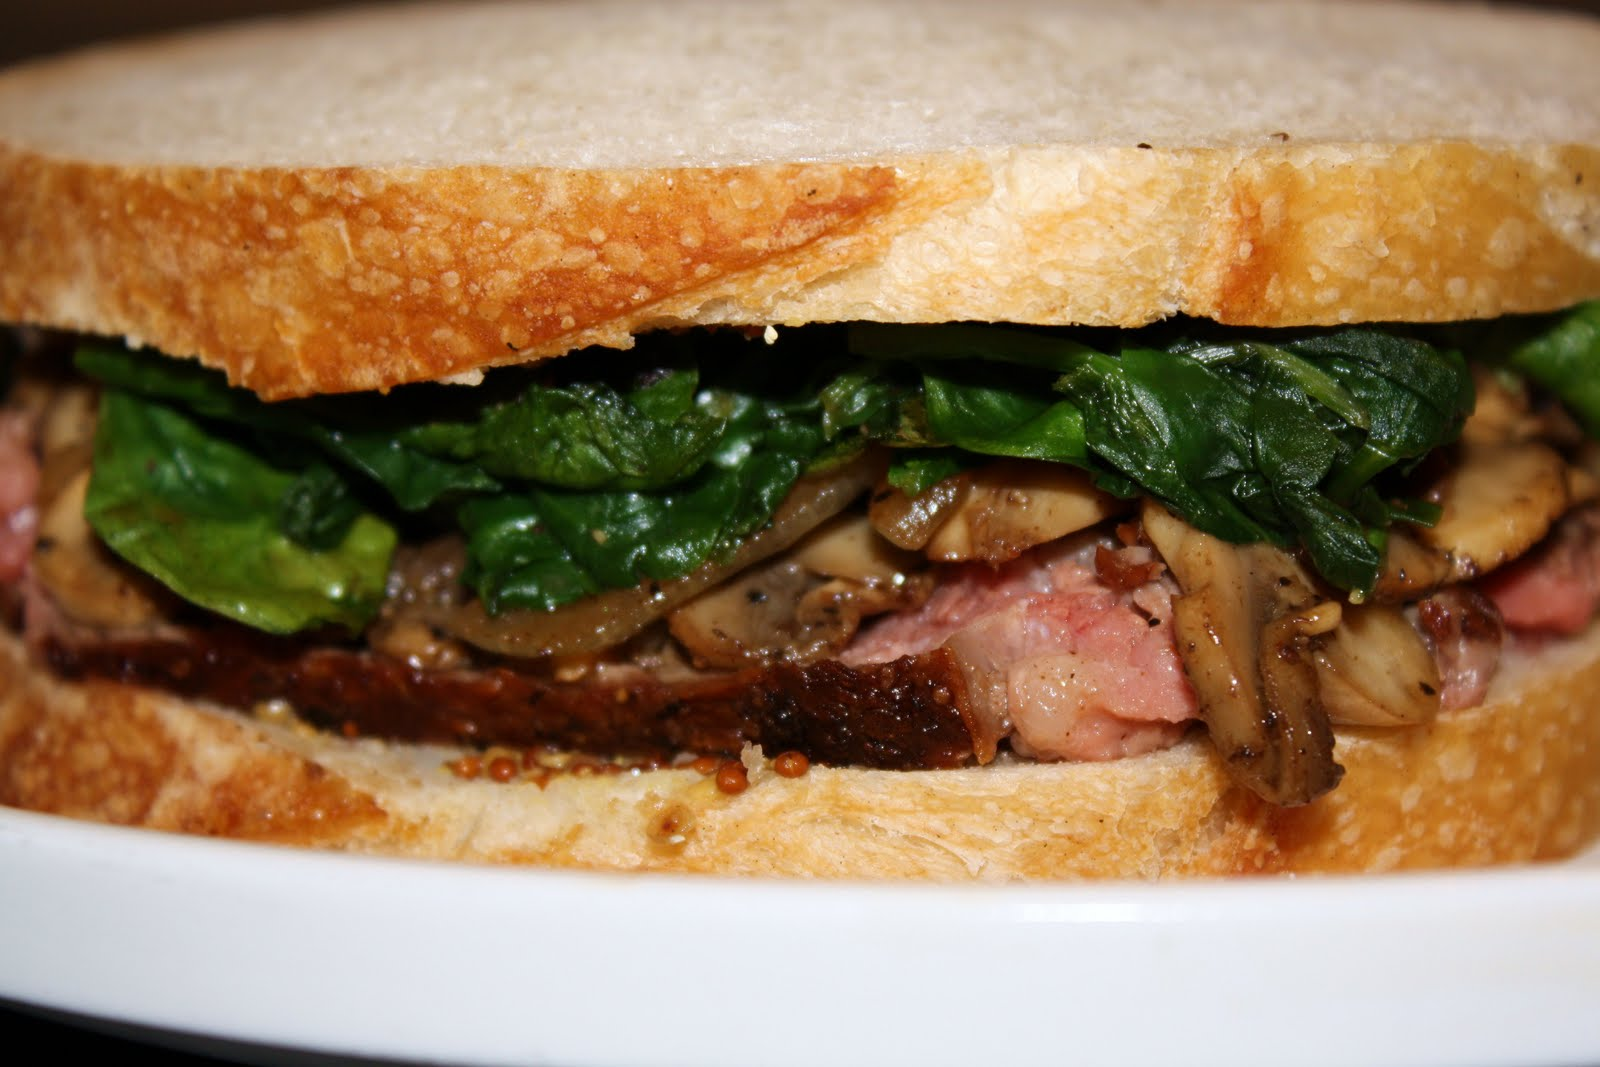 sandwiches grilled tofu sandwiches grilled steak sandwich with